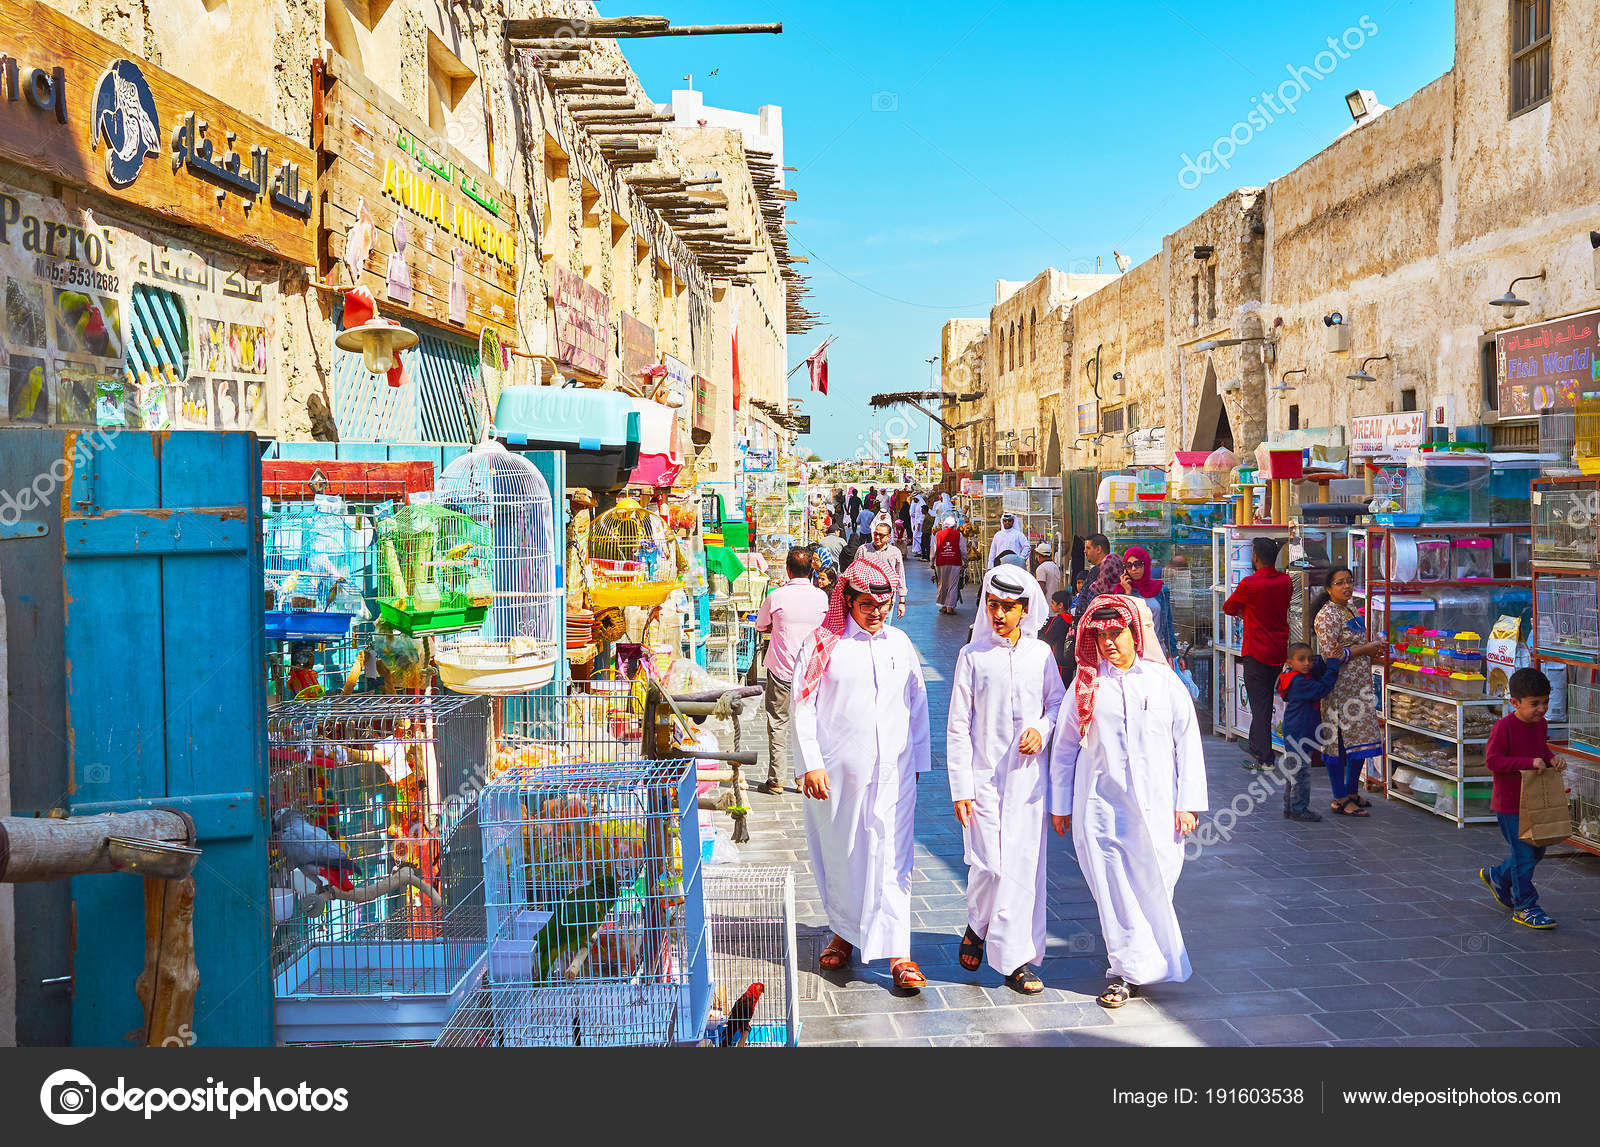 To buy pets and birds in Souq Waqif, Doha, Qatar – Stock Editorial